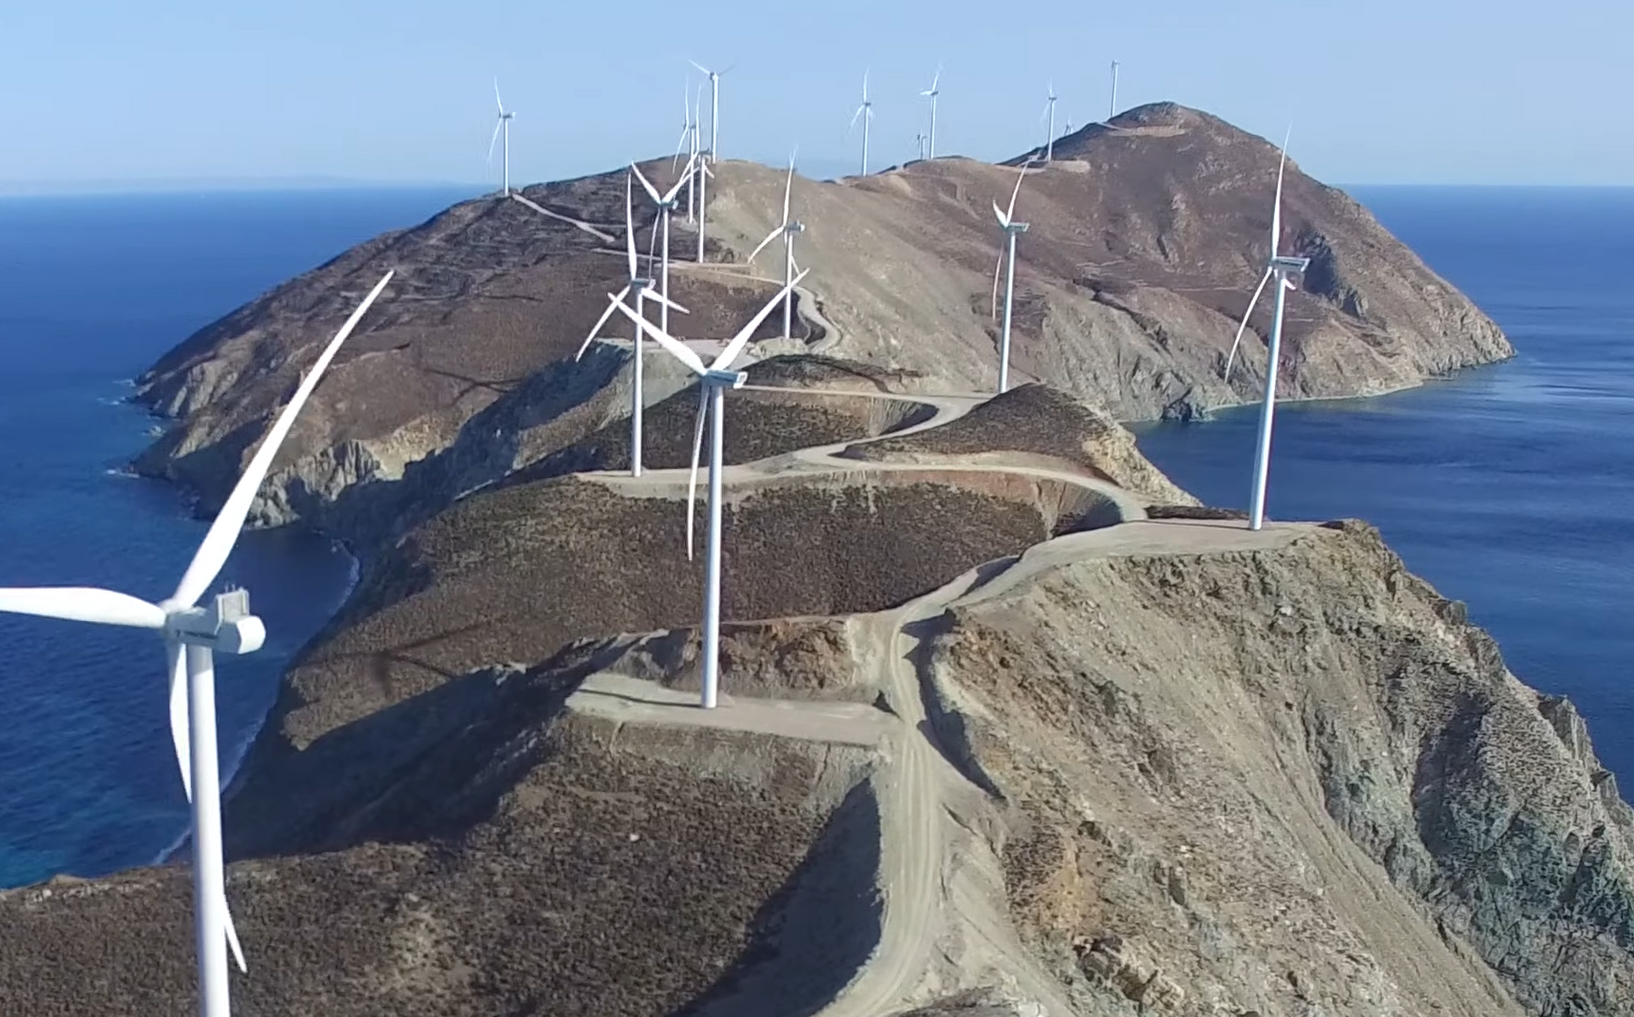 Too much of a good thing? Wind power and the battle for Greece's wild heart